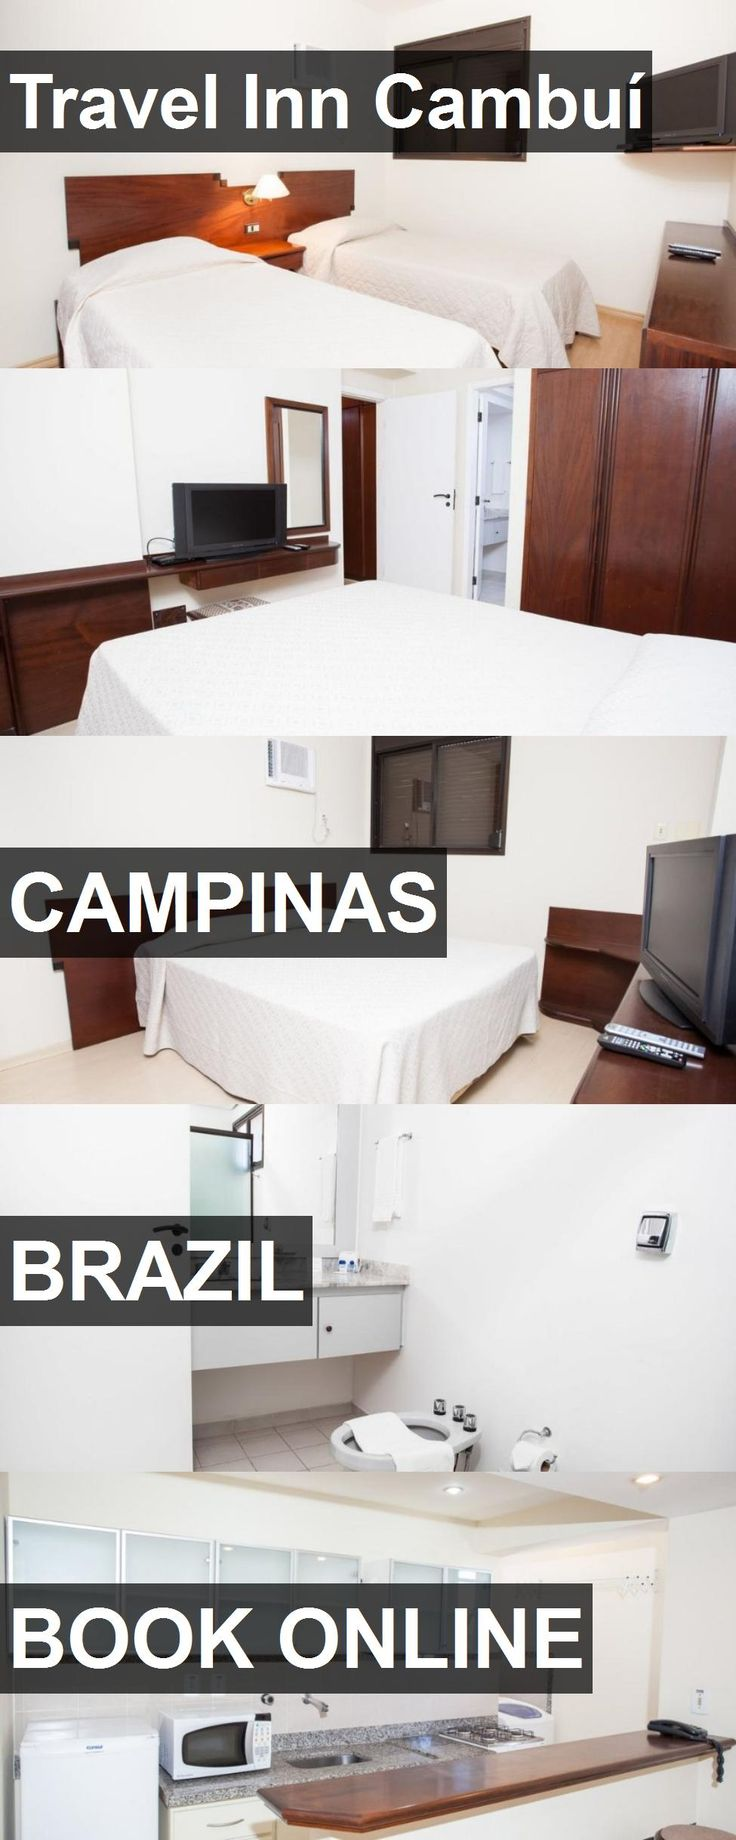 Hotel Travel Inn Cambuí in Campinas, Brazil. For more information, photos, reviews and best prices please follow the link. #Brazil #Campinas #hotel #travel #vacation